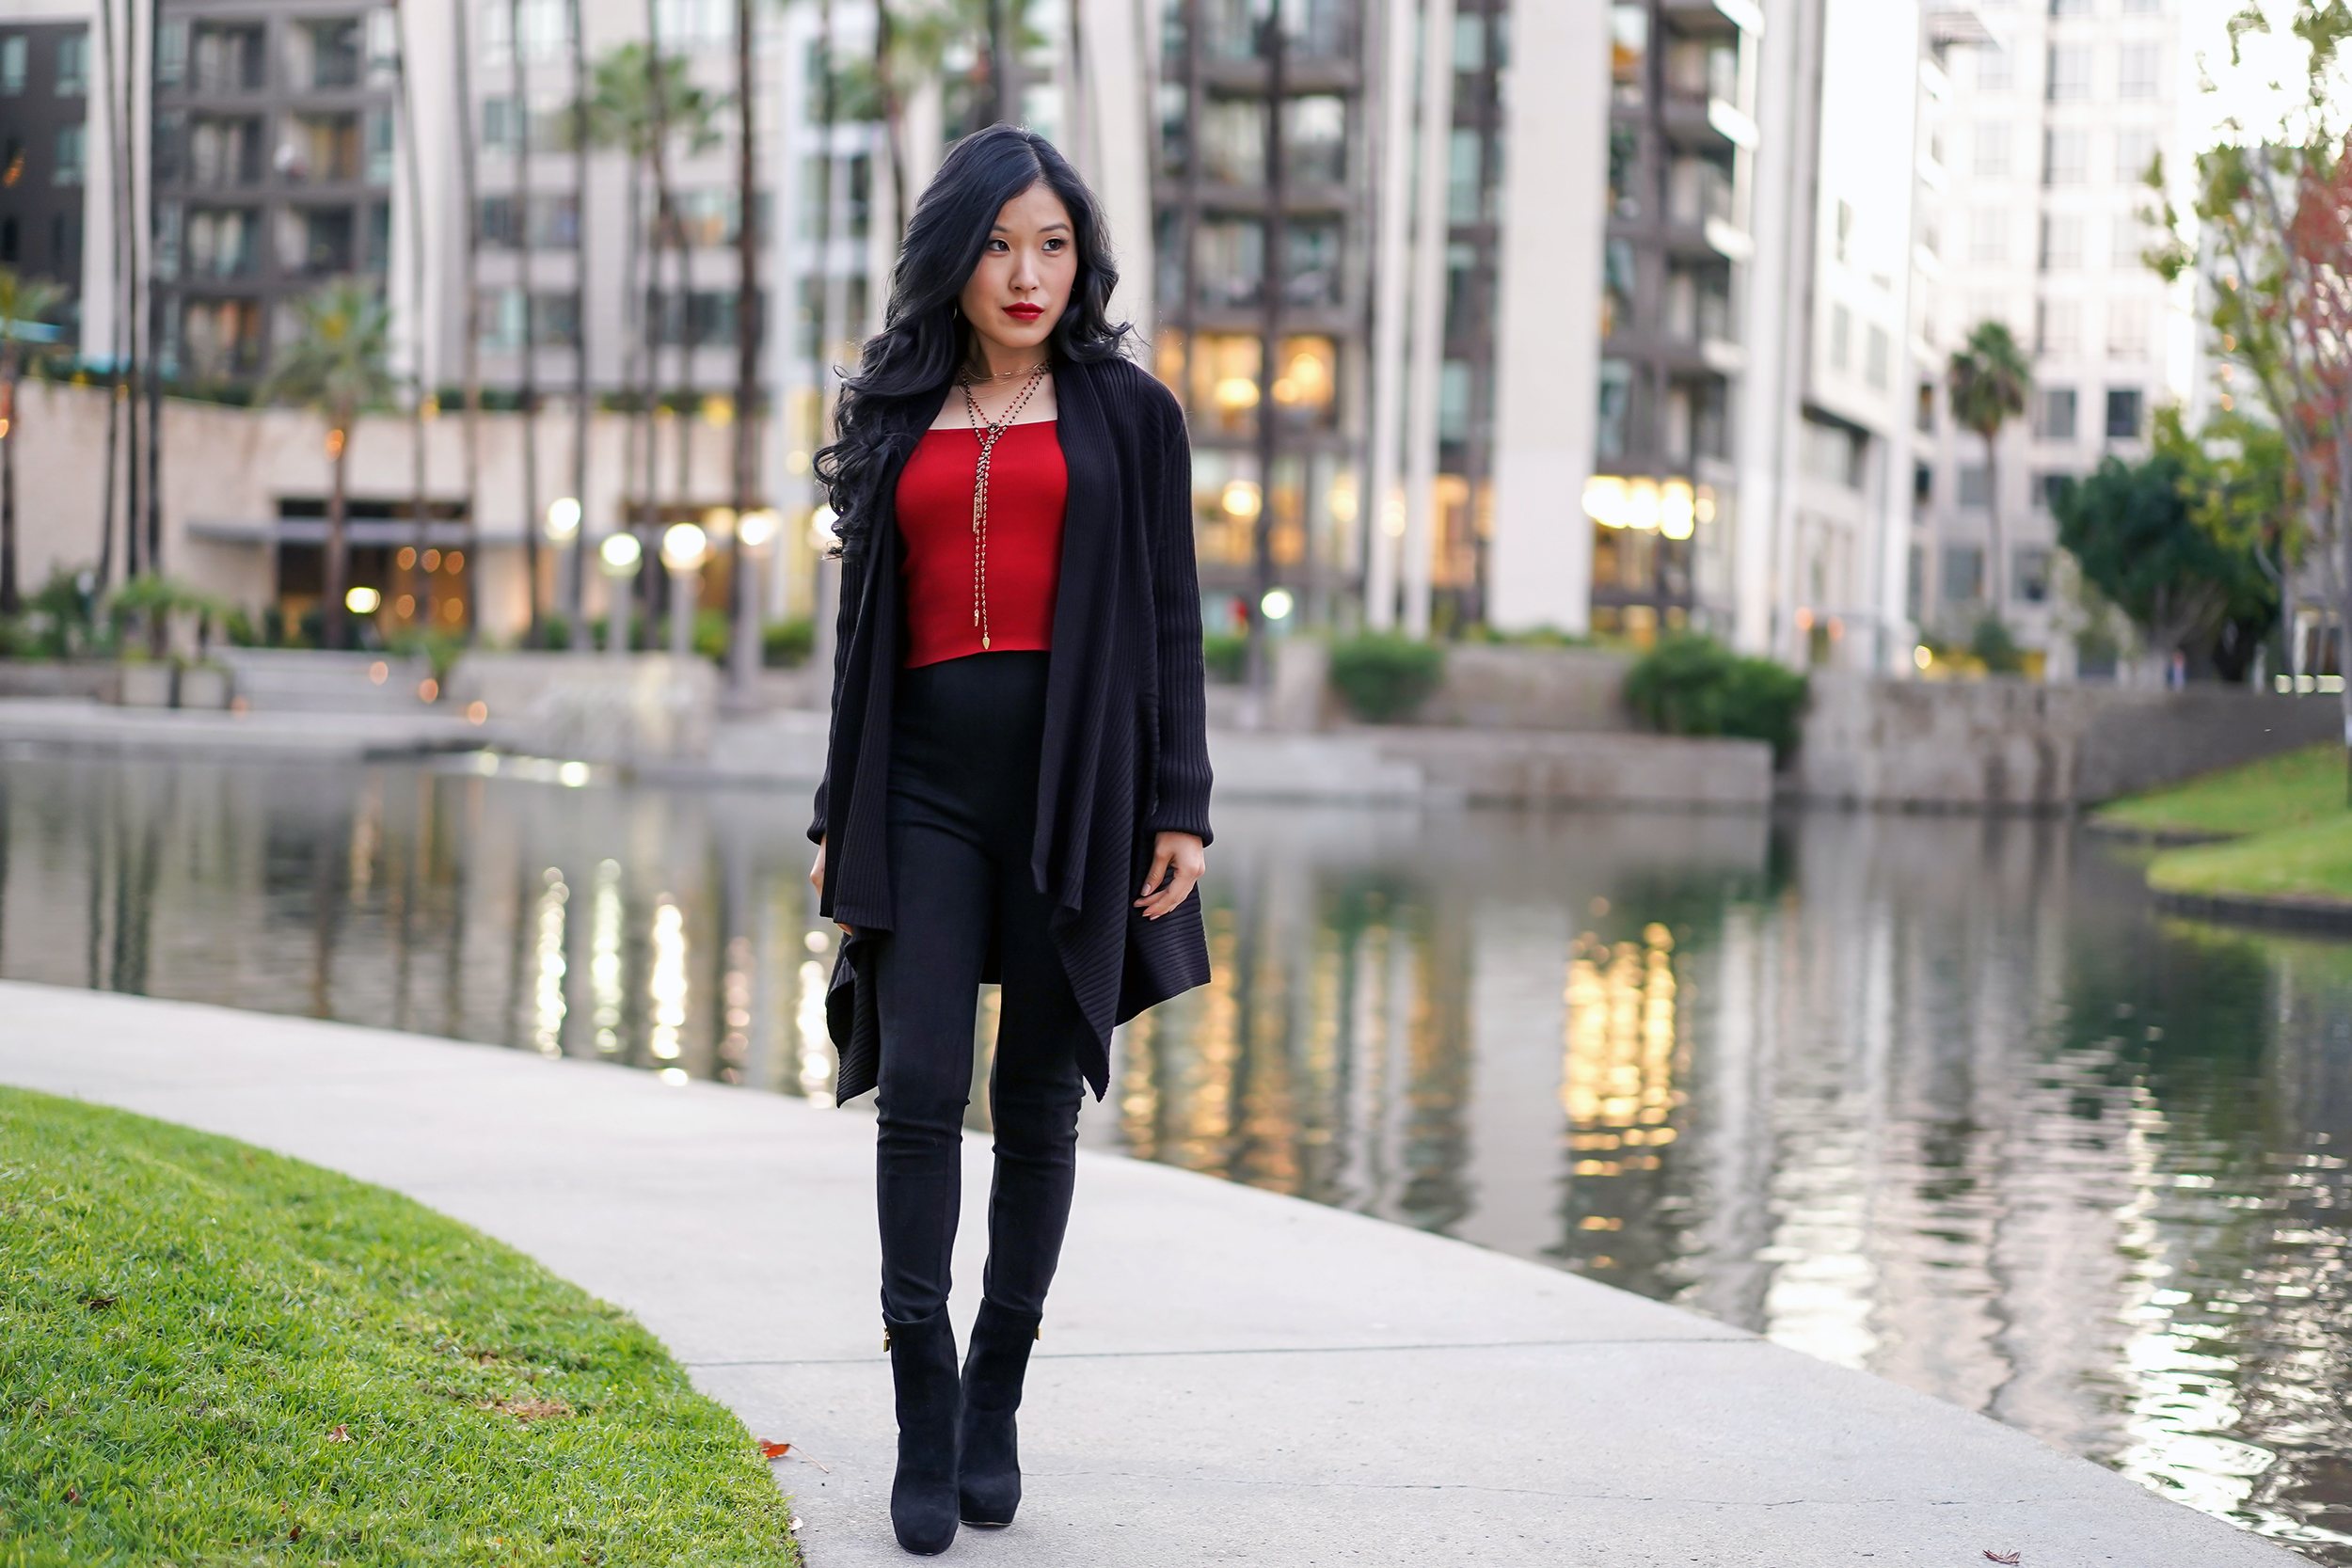 Red and Black Look: Express Cropped Puff Sleeve Red Sweater, White House Black Market ribbed Cover-Up Sweater, Free People Red and Black Beaded Necklace